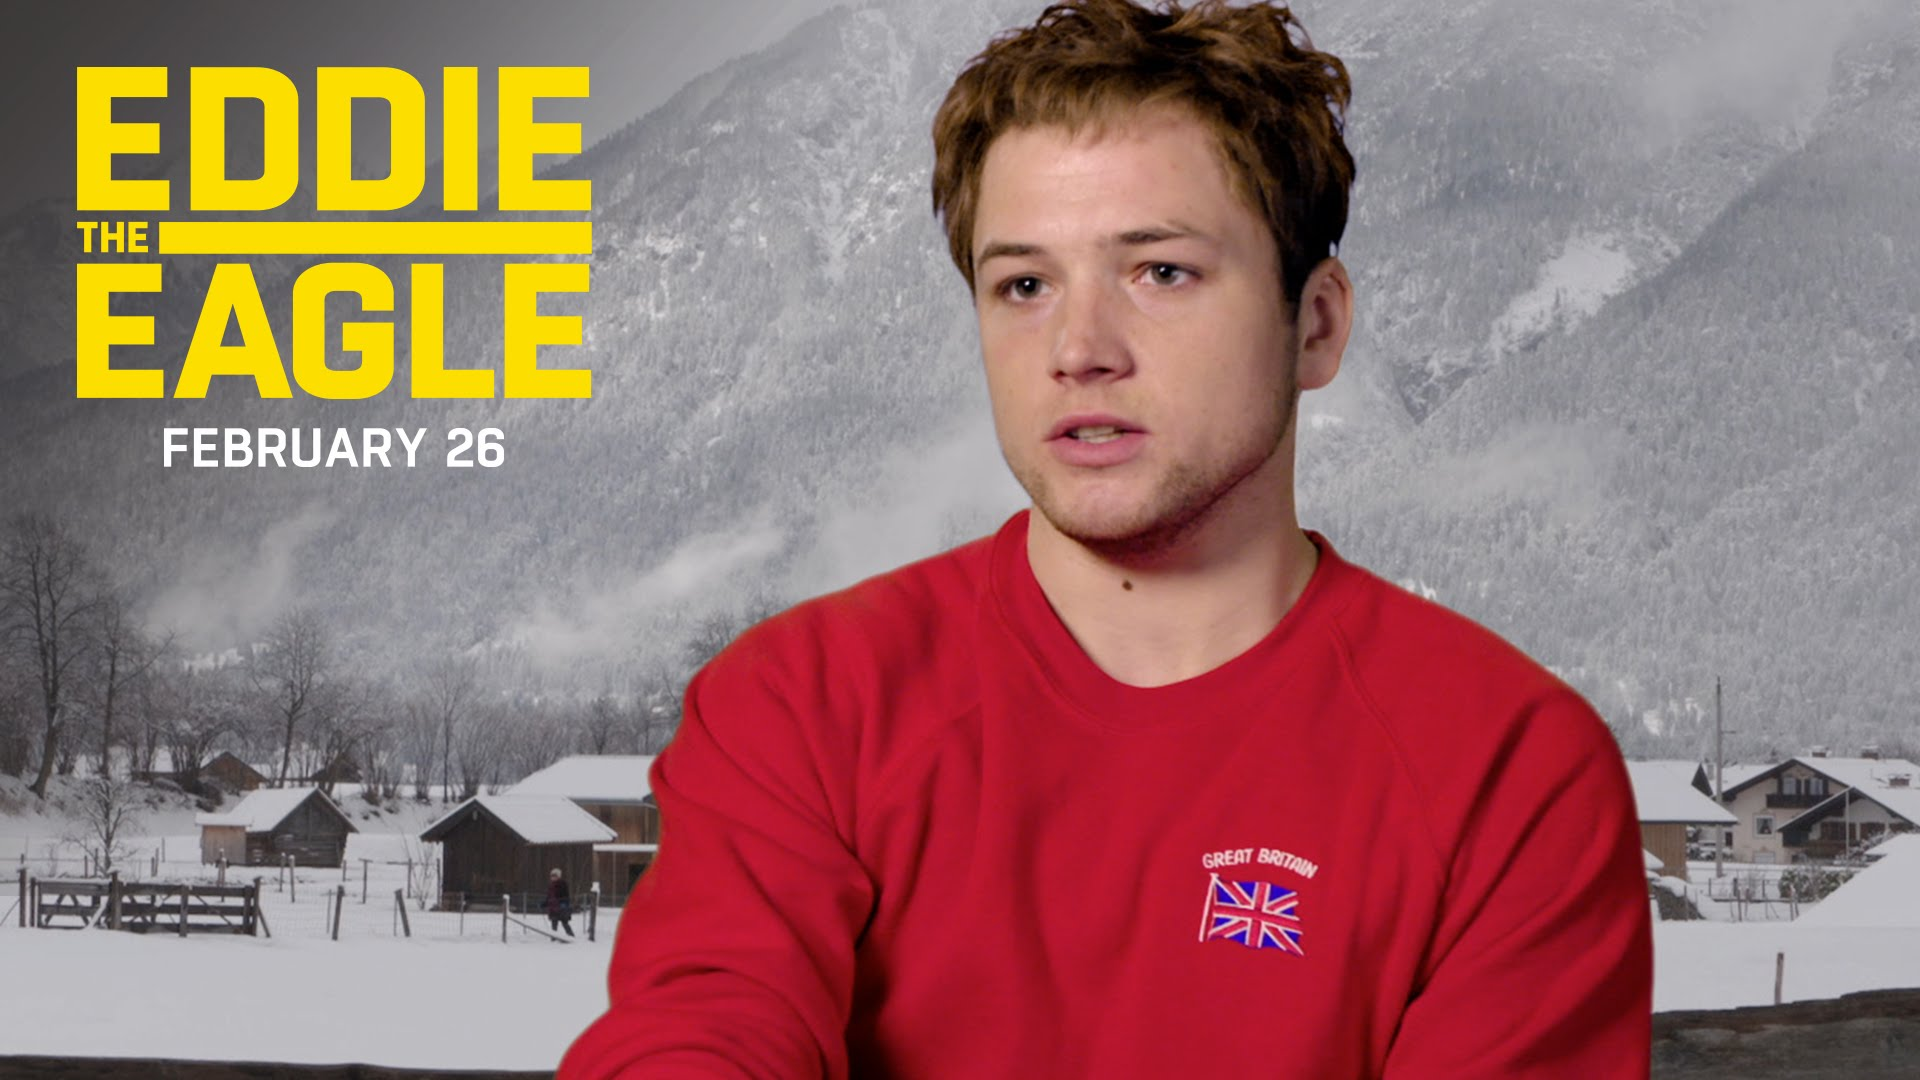 """Eddie the Eagle 